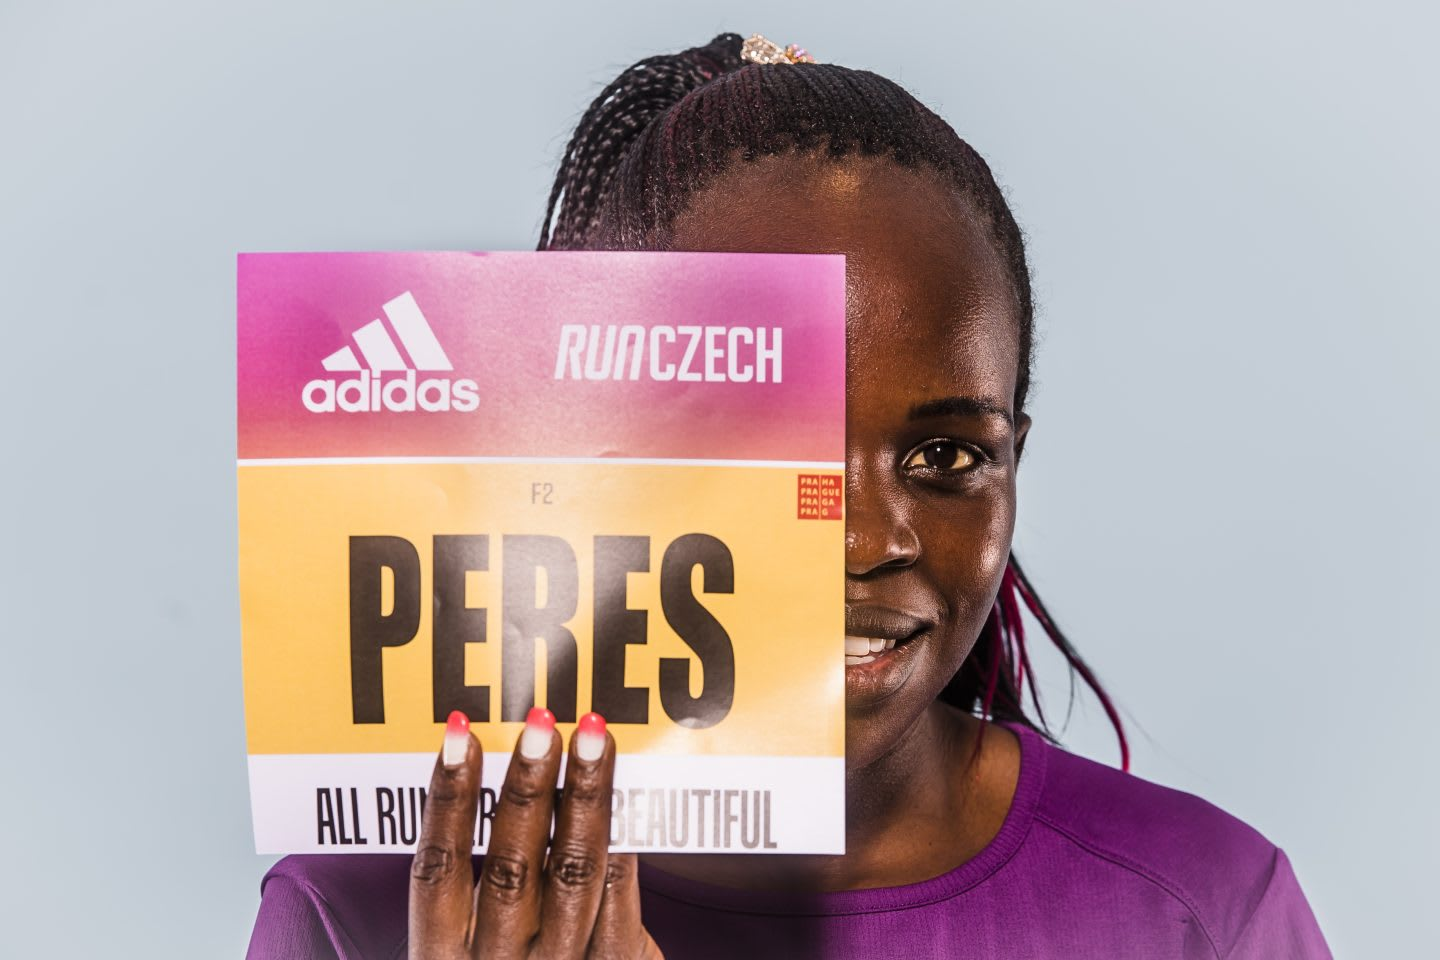 Kenyan long-distance runner Peres Jepchirchir holding her runnning big at the Prague half marathon, adidas, adizero, adios, Pro, athlete, sports, runner